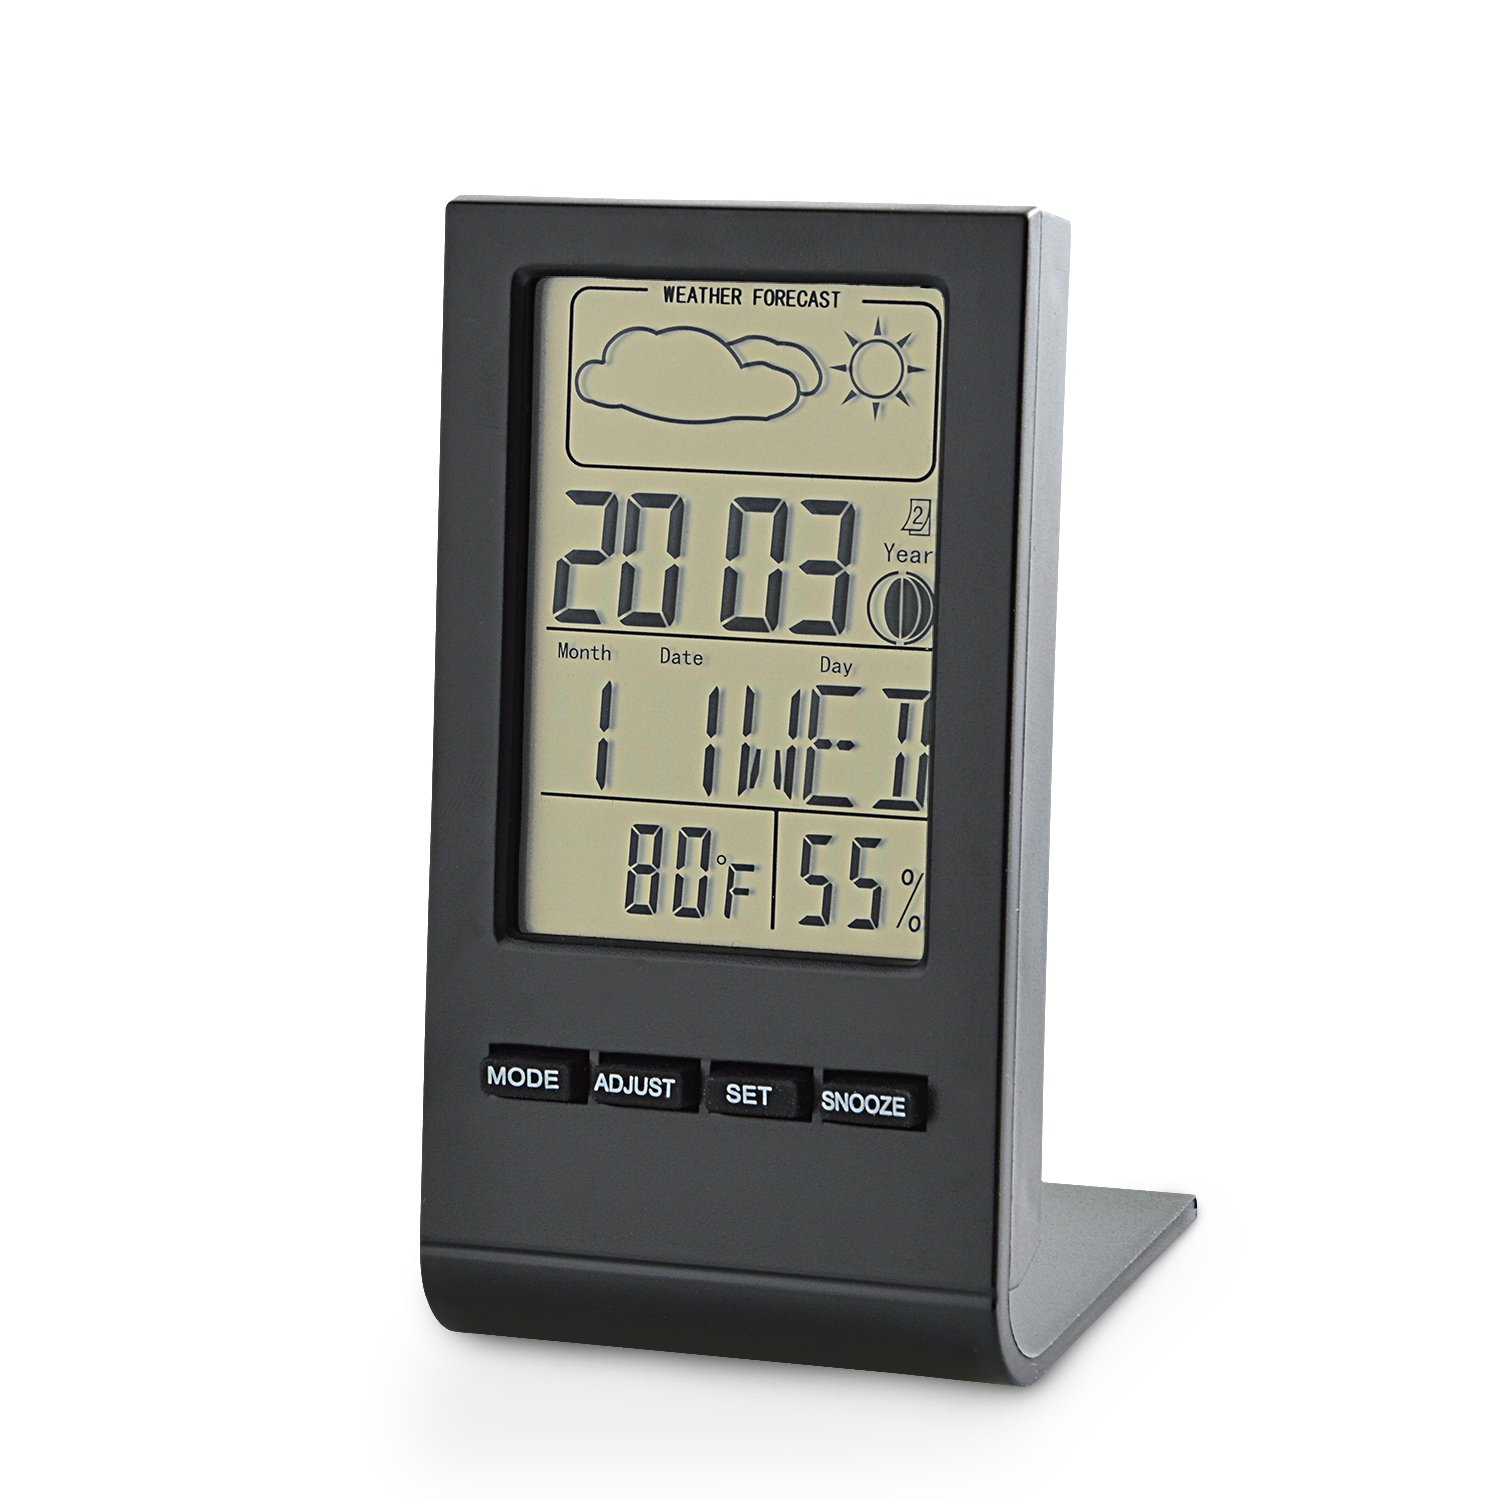 Neuftech Wireless Digital Weather Station Temperature Hygrometer Humidity Thermometer Monitor for Indoor Outdoor with Weather Forecast, Alarm Clock, Calendar, Moon Phase Display- Black EU-Thermo-Weather station BLK